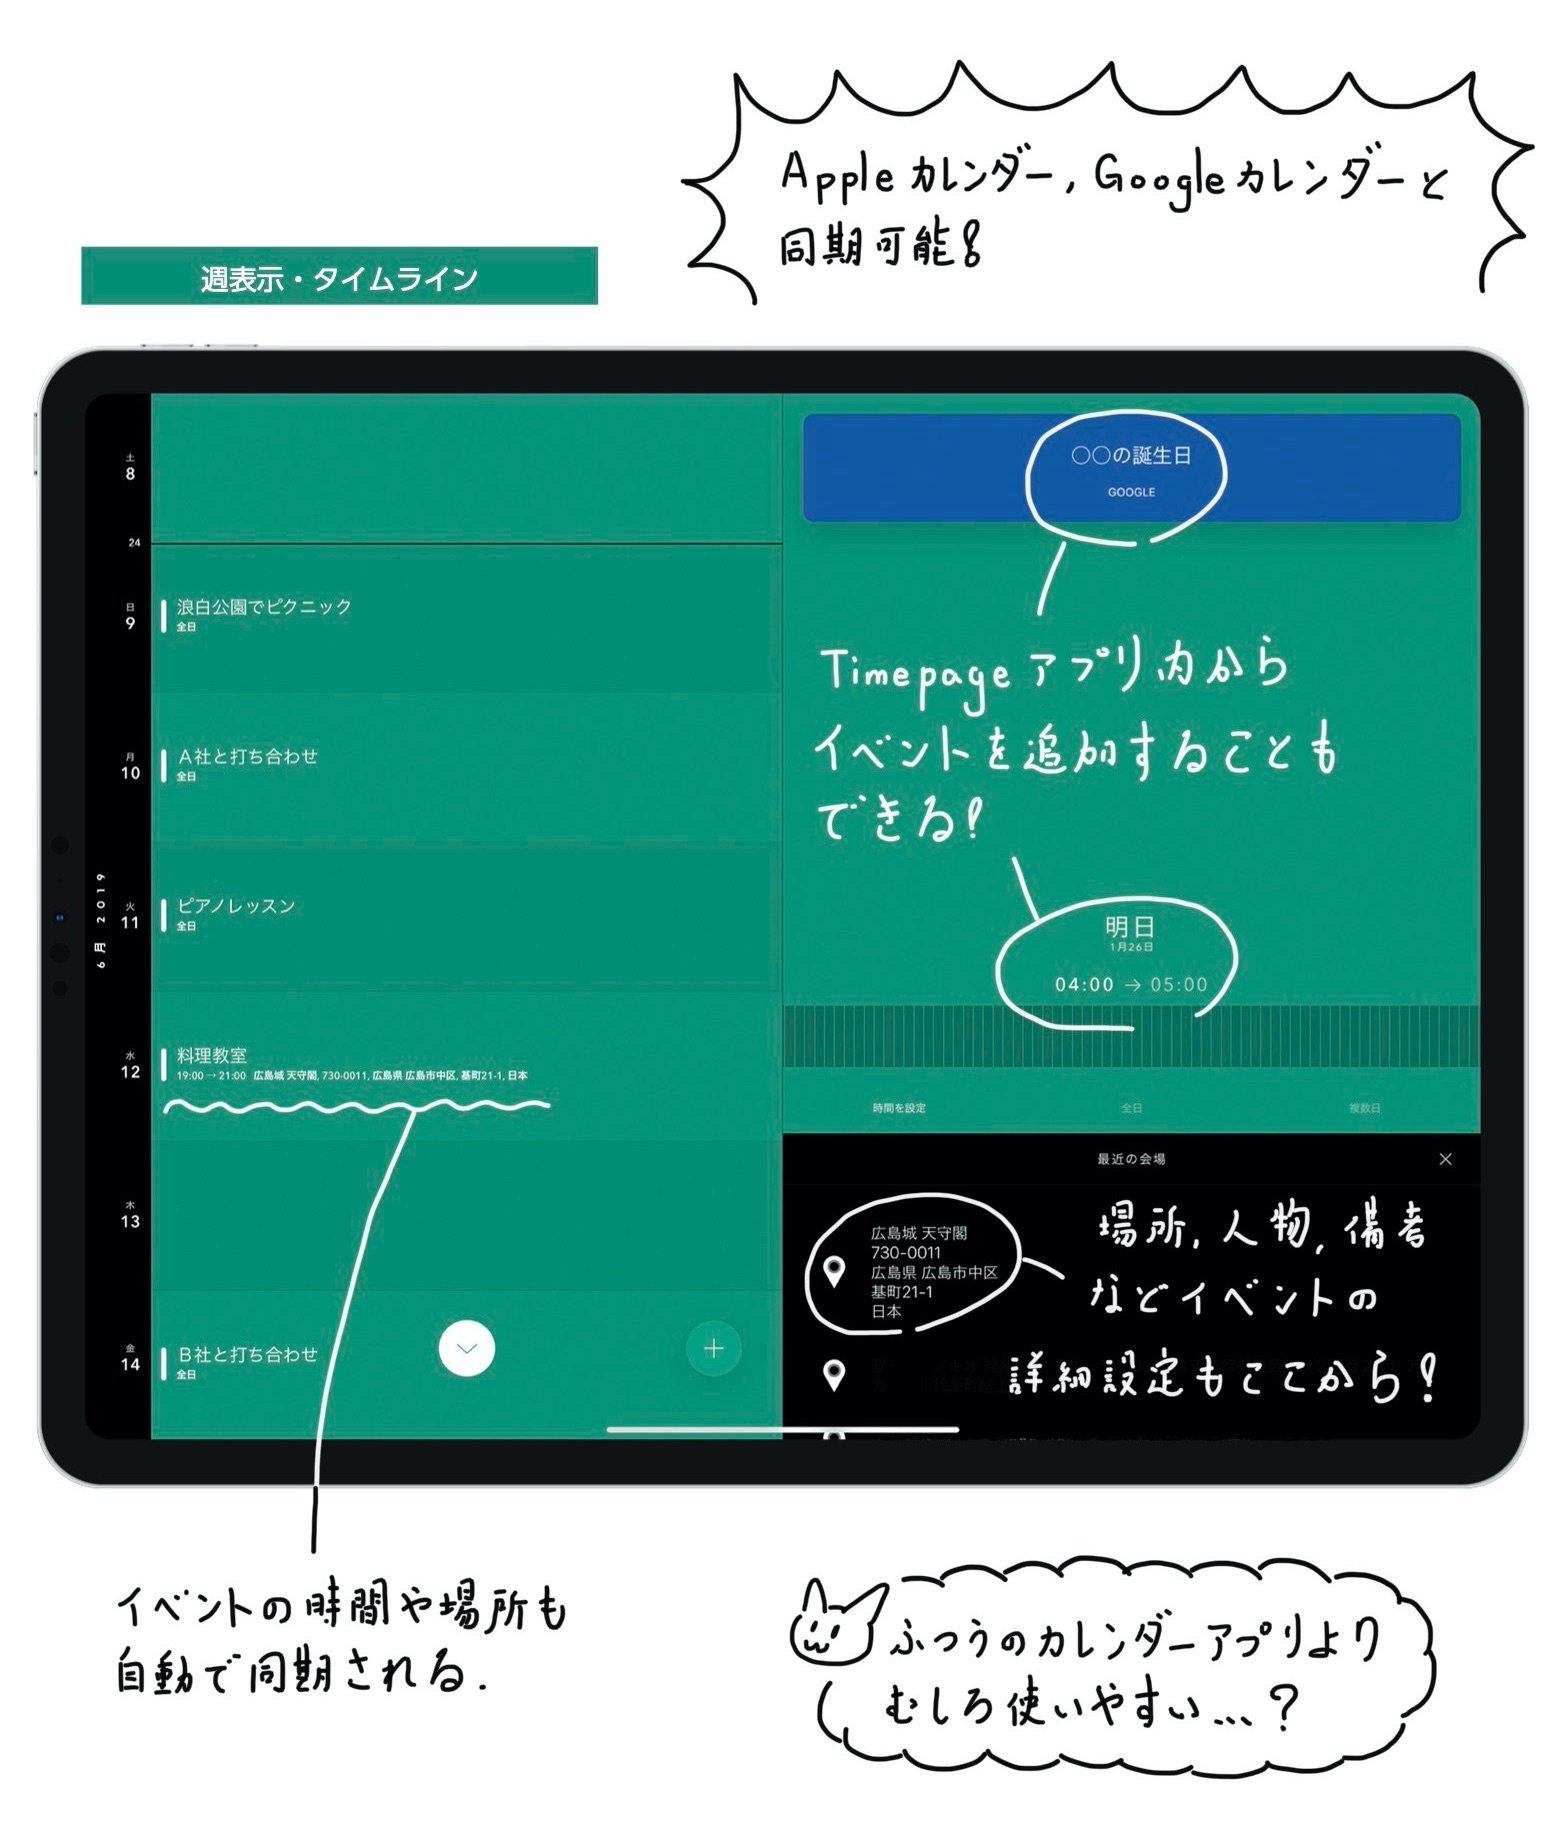 TImepage レビュー